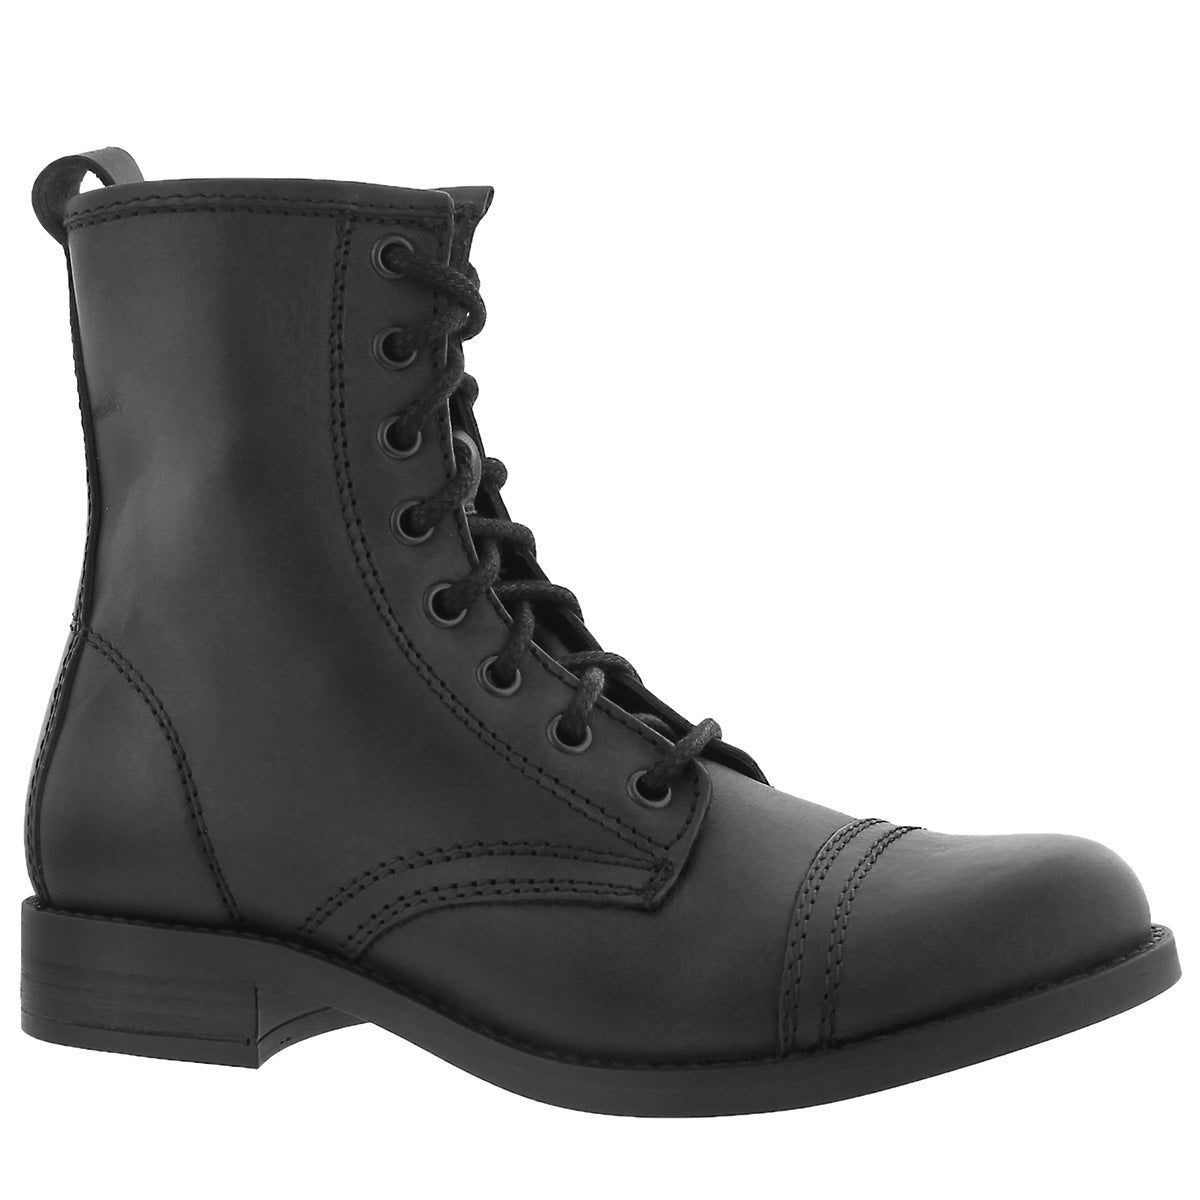 Women's CHARRIE black lace up combat boots